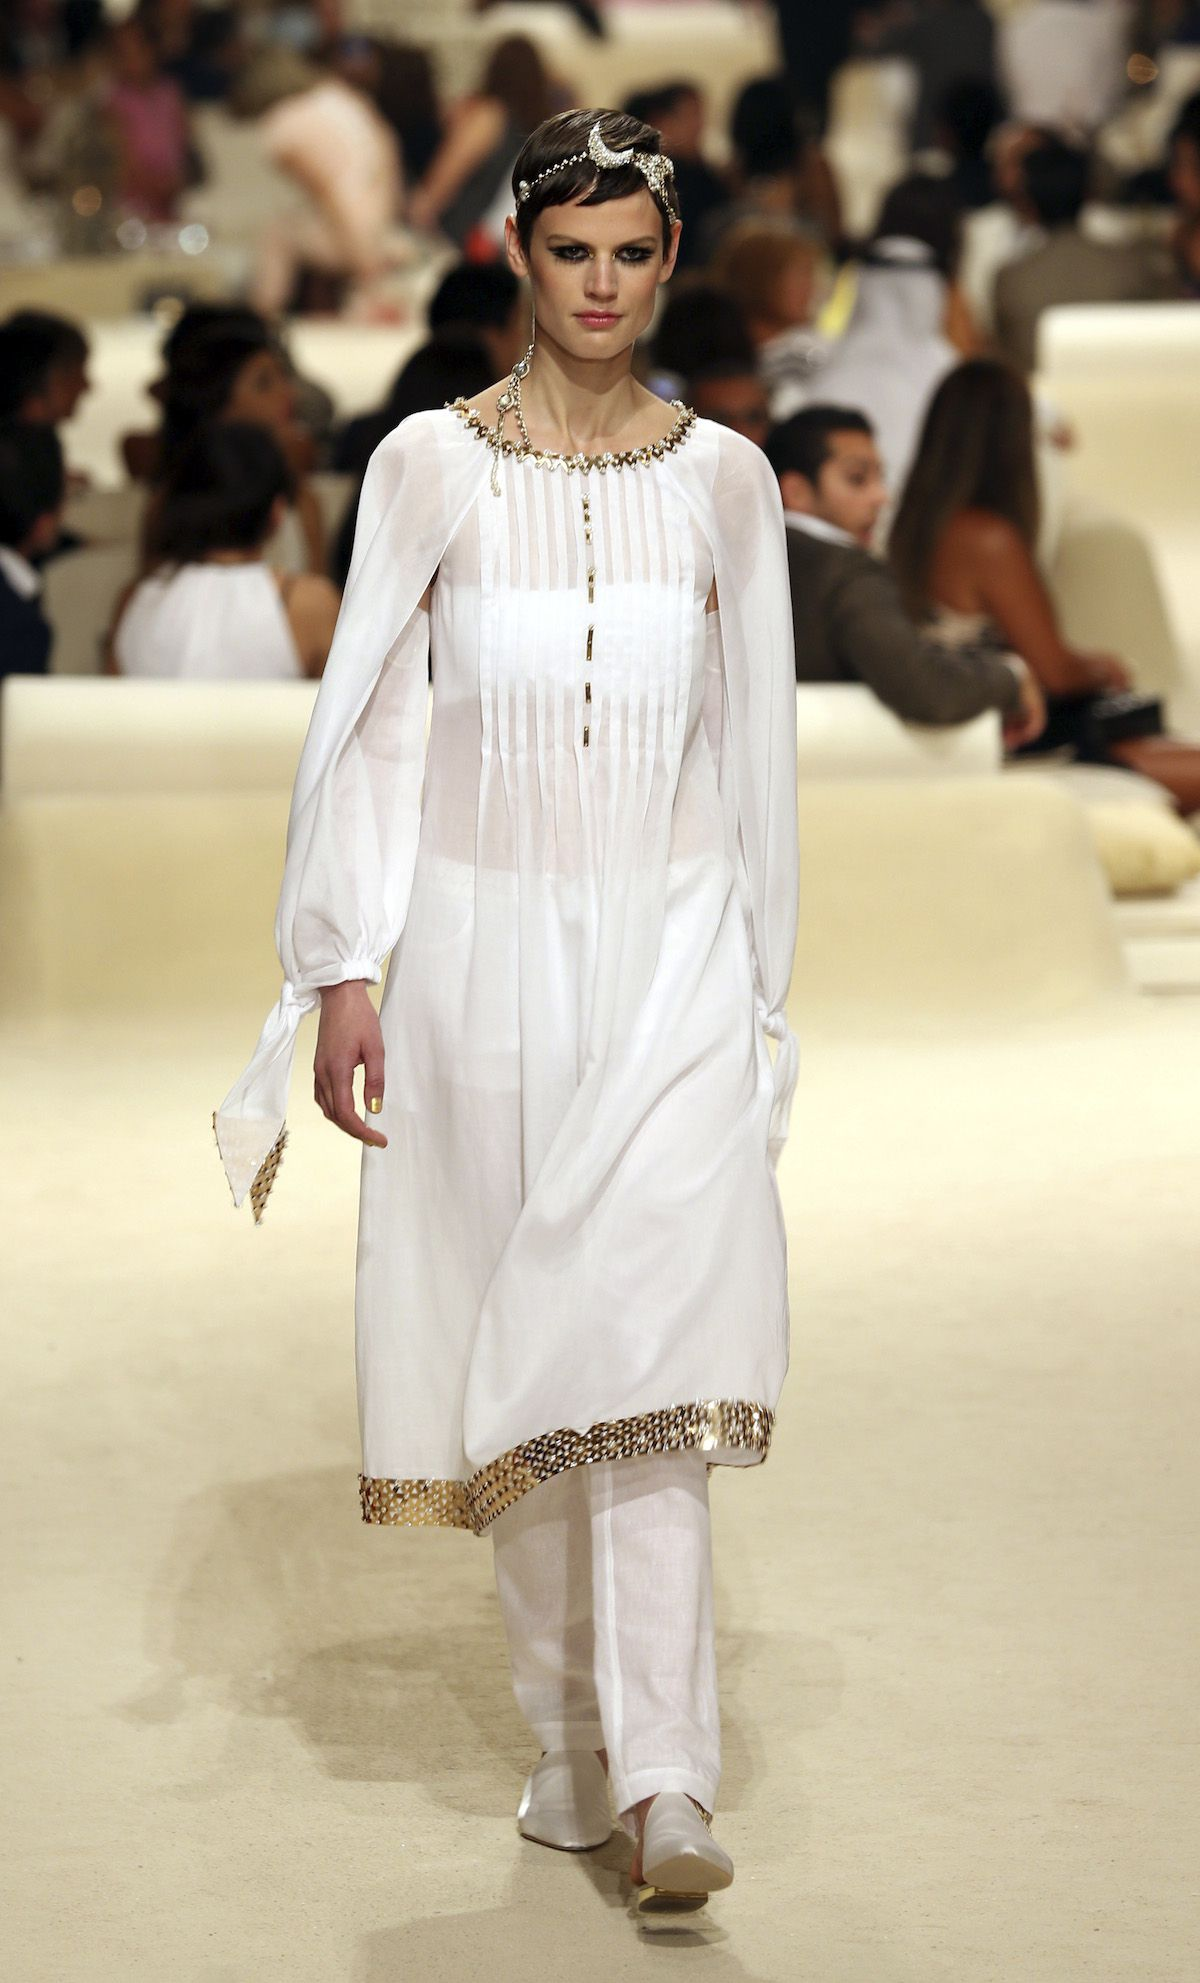 A model presents a creation from Chanel's 2014/15 Cruise collection in Dubai